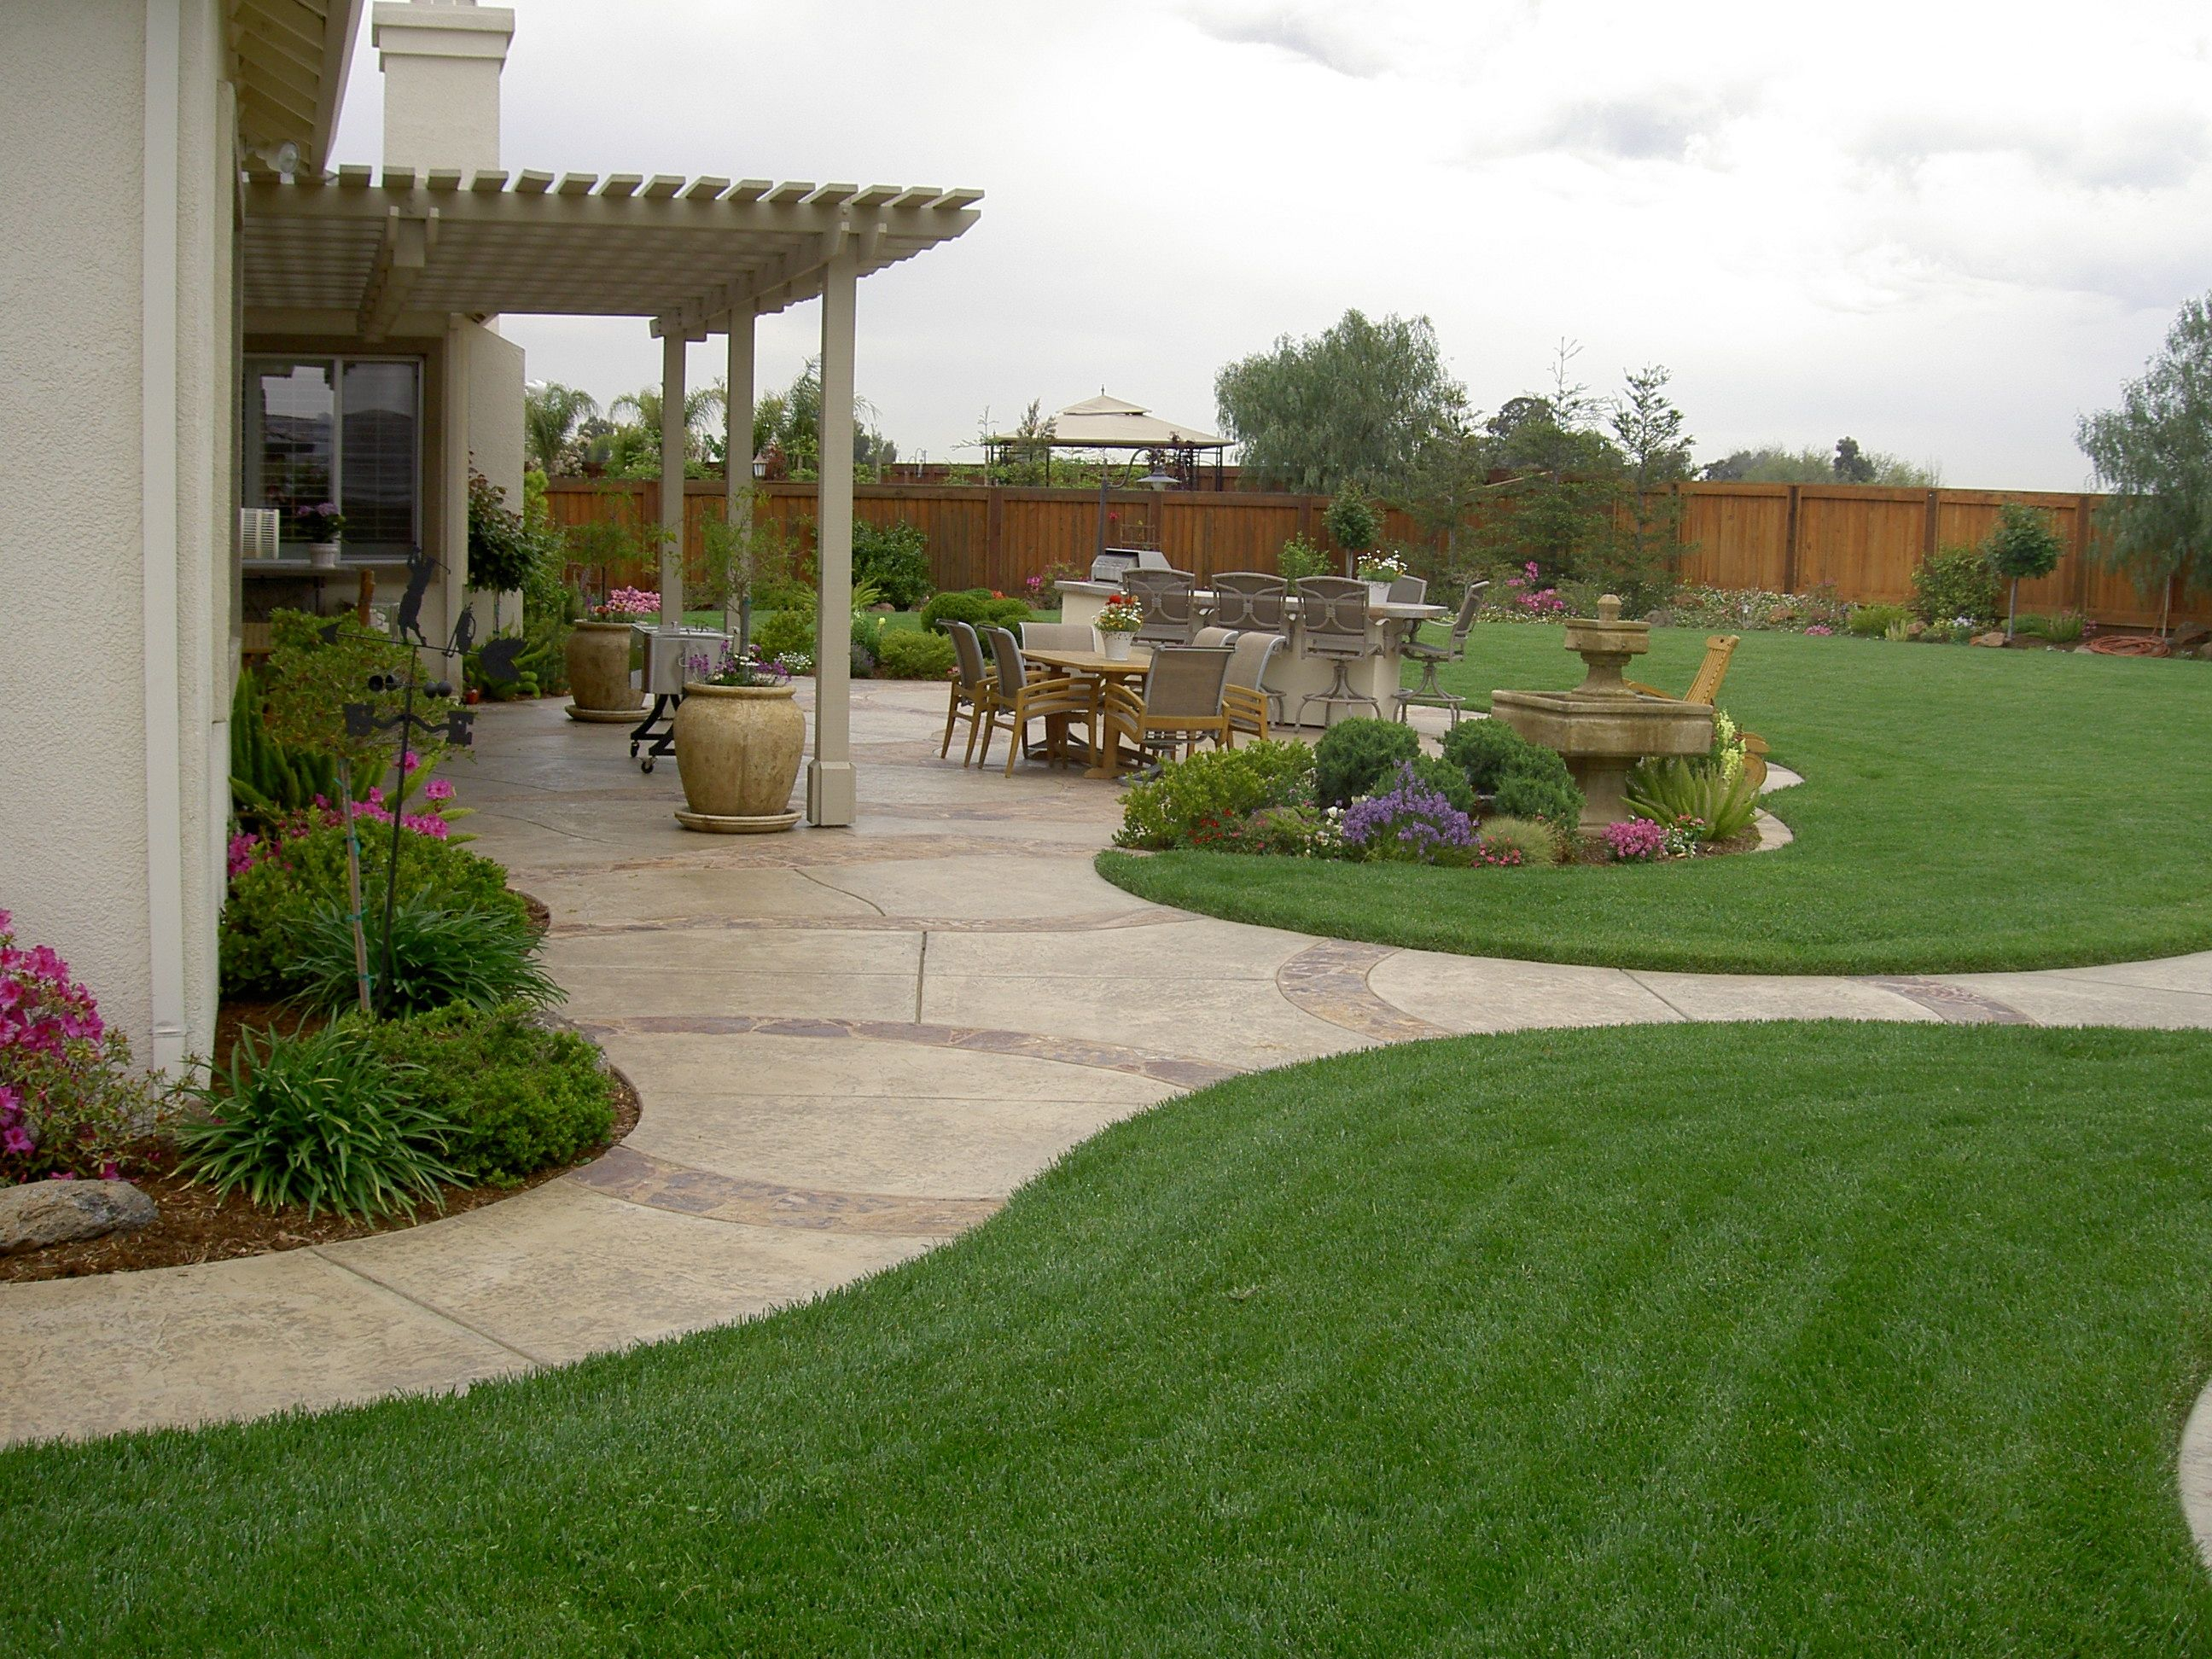 20 Awesome Landscaping Ideas For Your Backyard Gardensoutdoor in Backyard Landscape Ideas